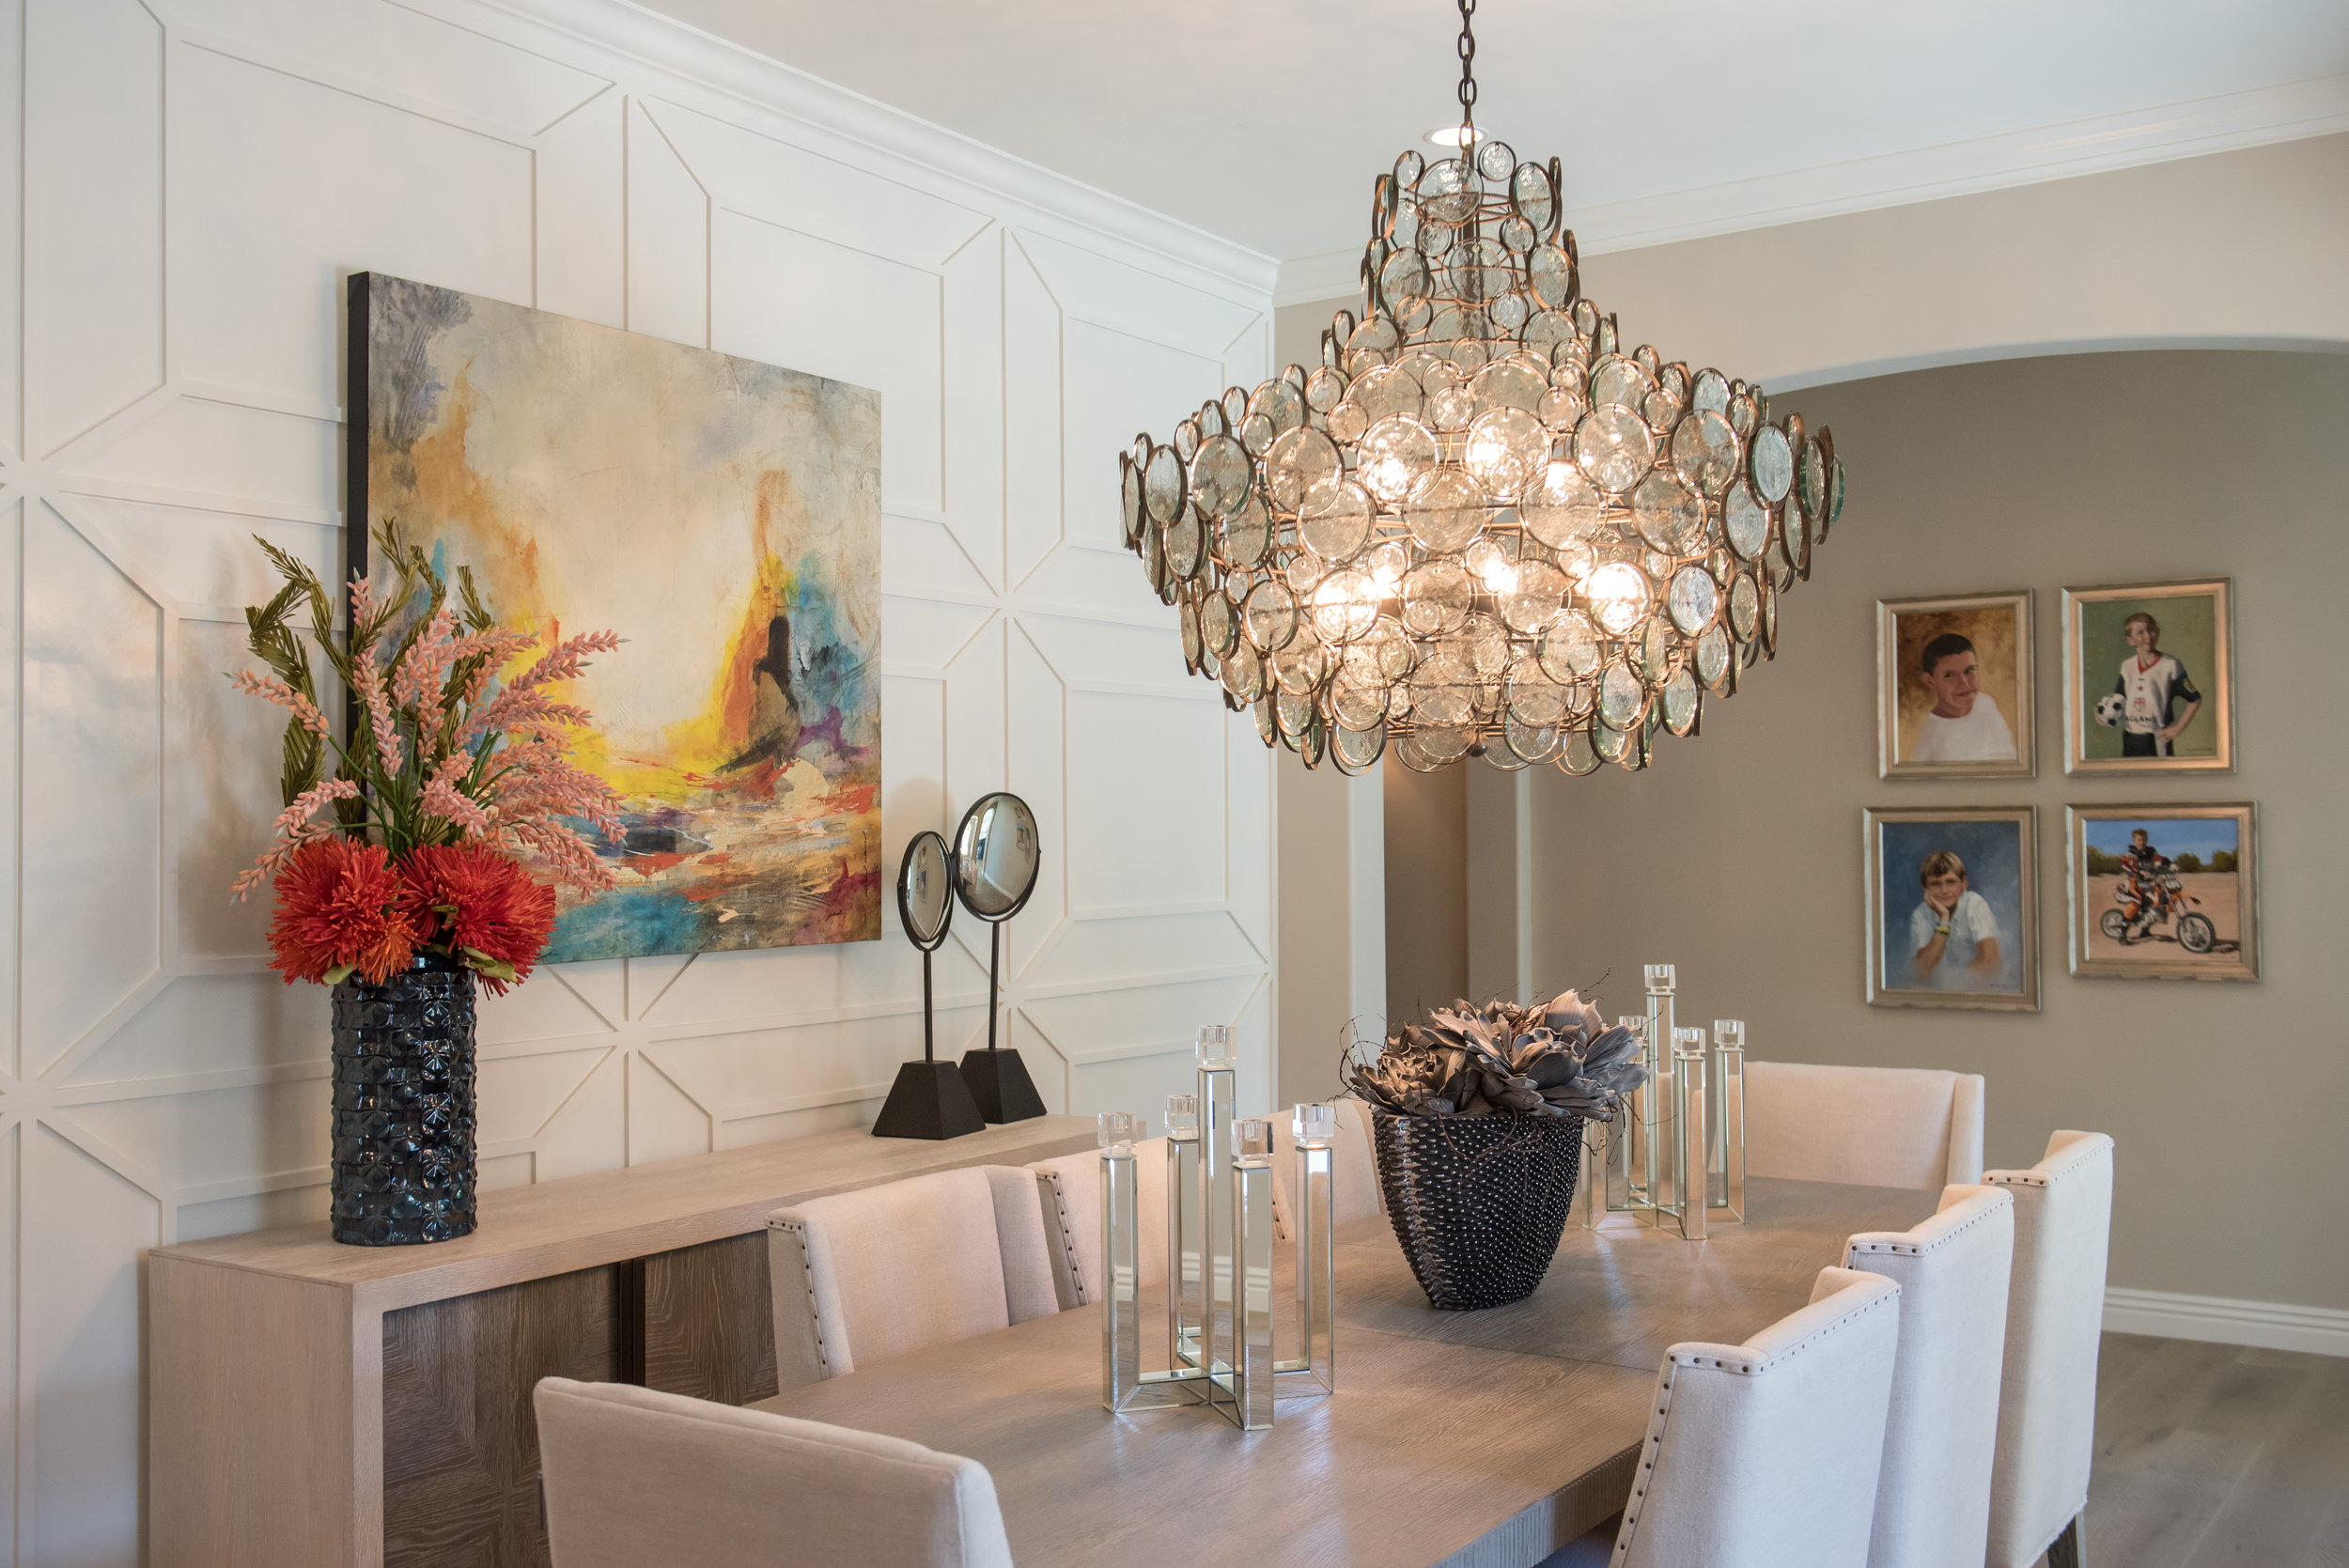 3 DiningRoom+Chandelier+Scottsdale+Transitional+Artwork+Linen+Wallpaneling.jpg